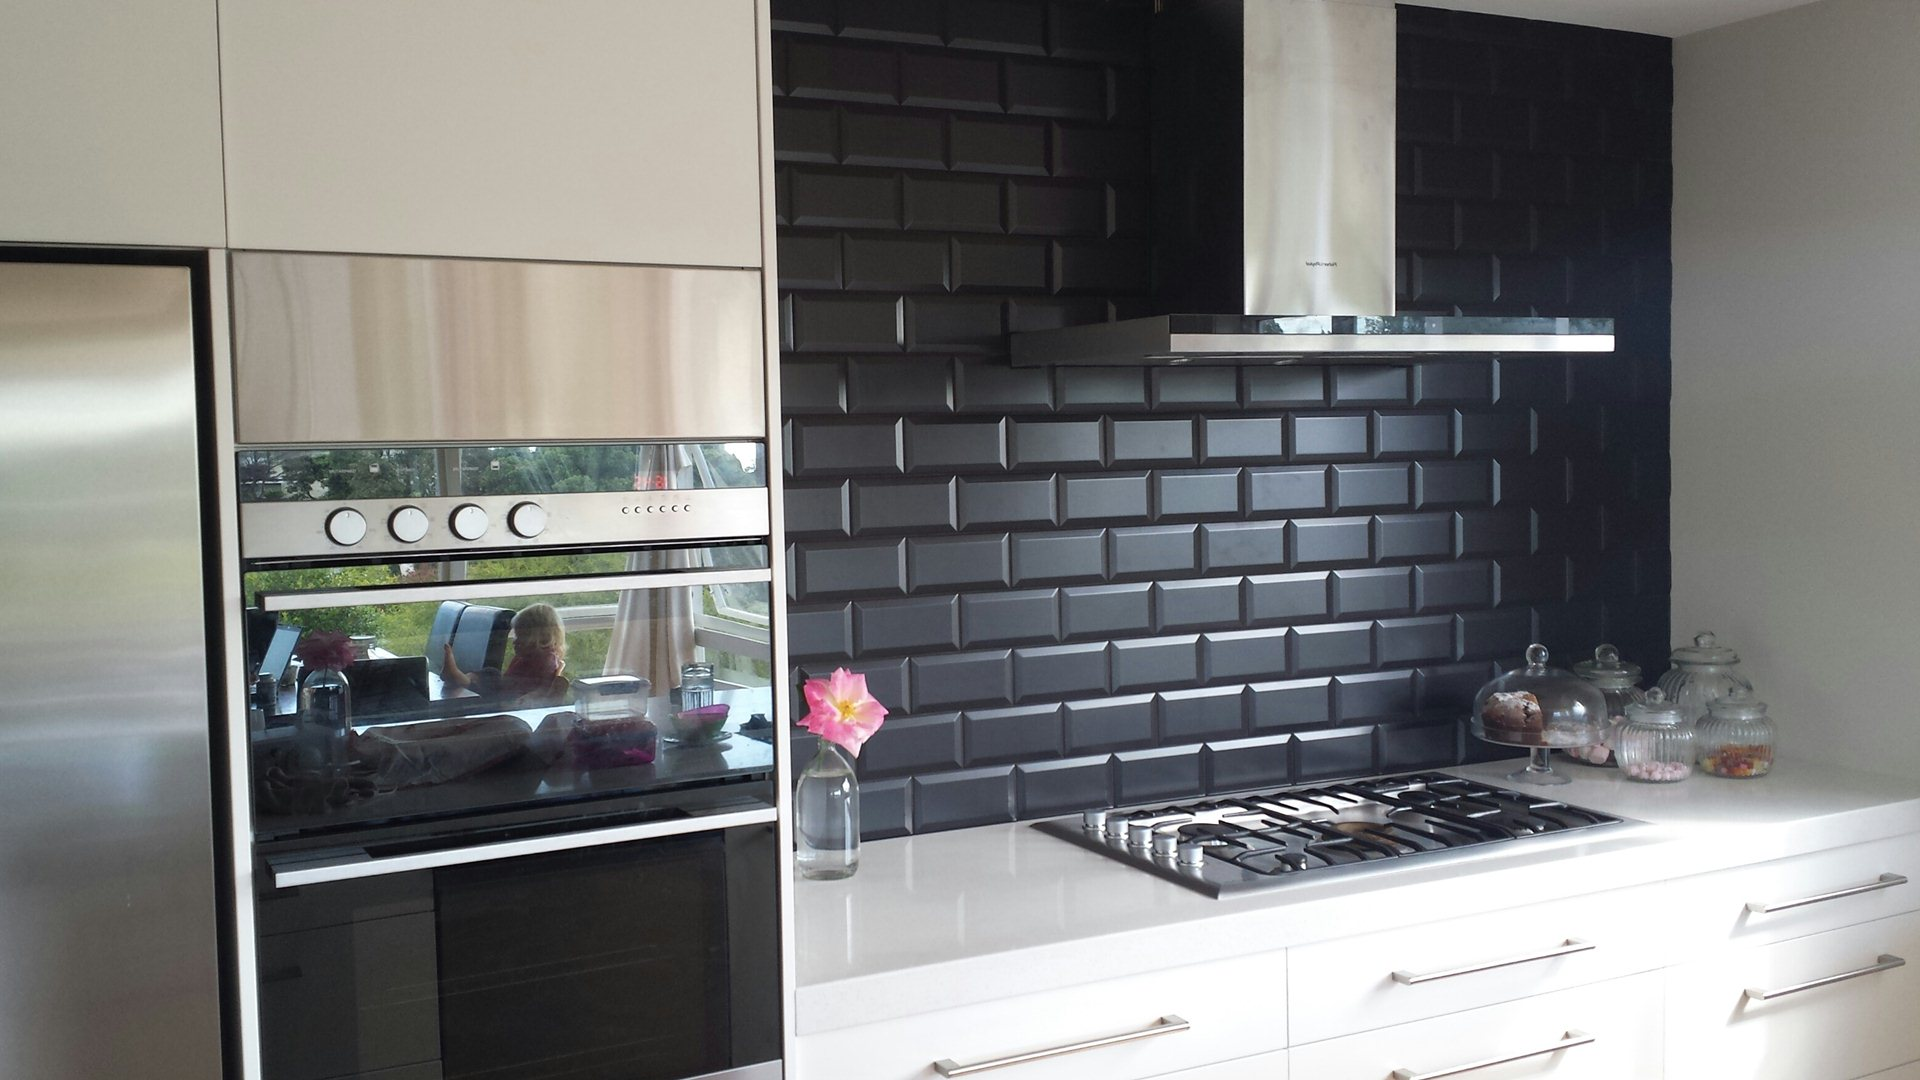 6 Outstanding Kitchen Backsplash Ideas That Make You Feel Like A Professional Chef Houseminds